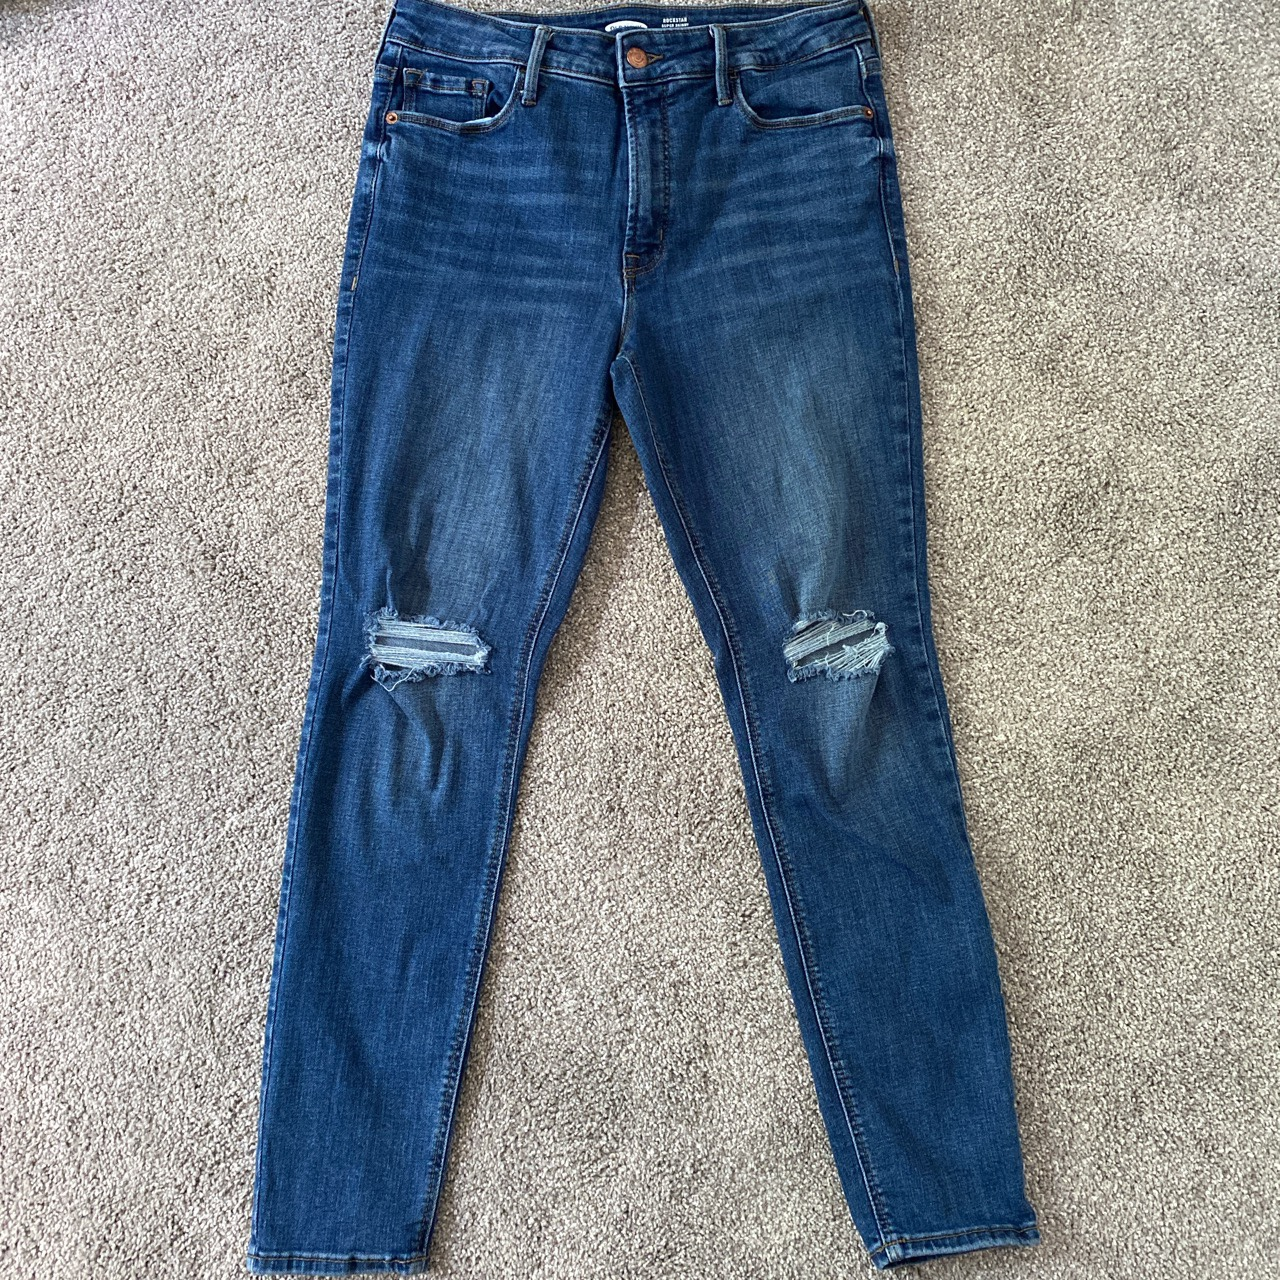 Product Image 1 - *Discount for @lvyyys!*  Old Navy Rockstar